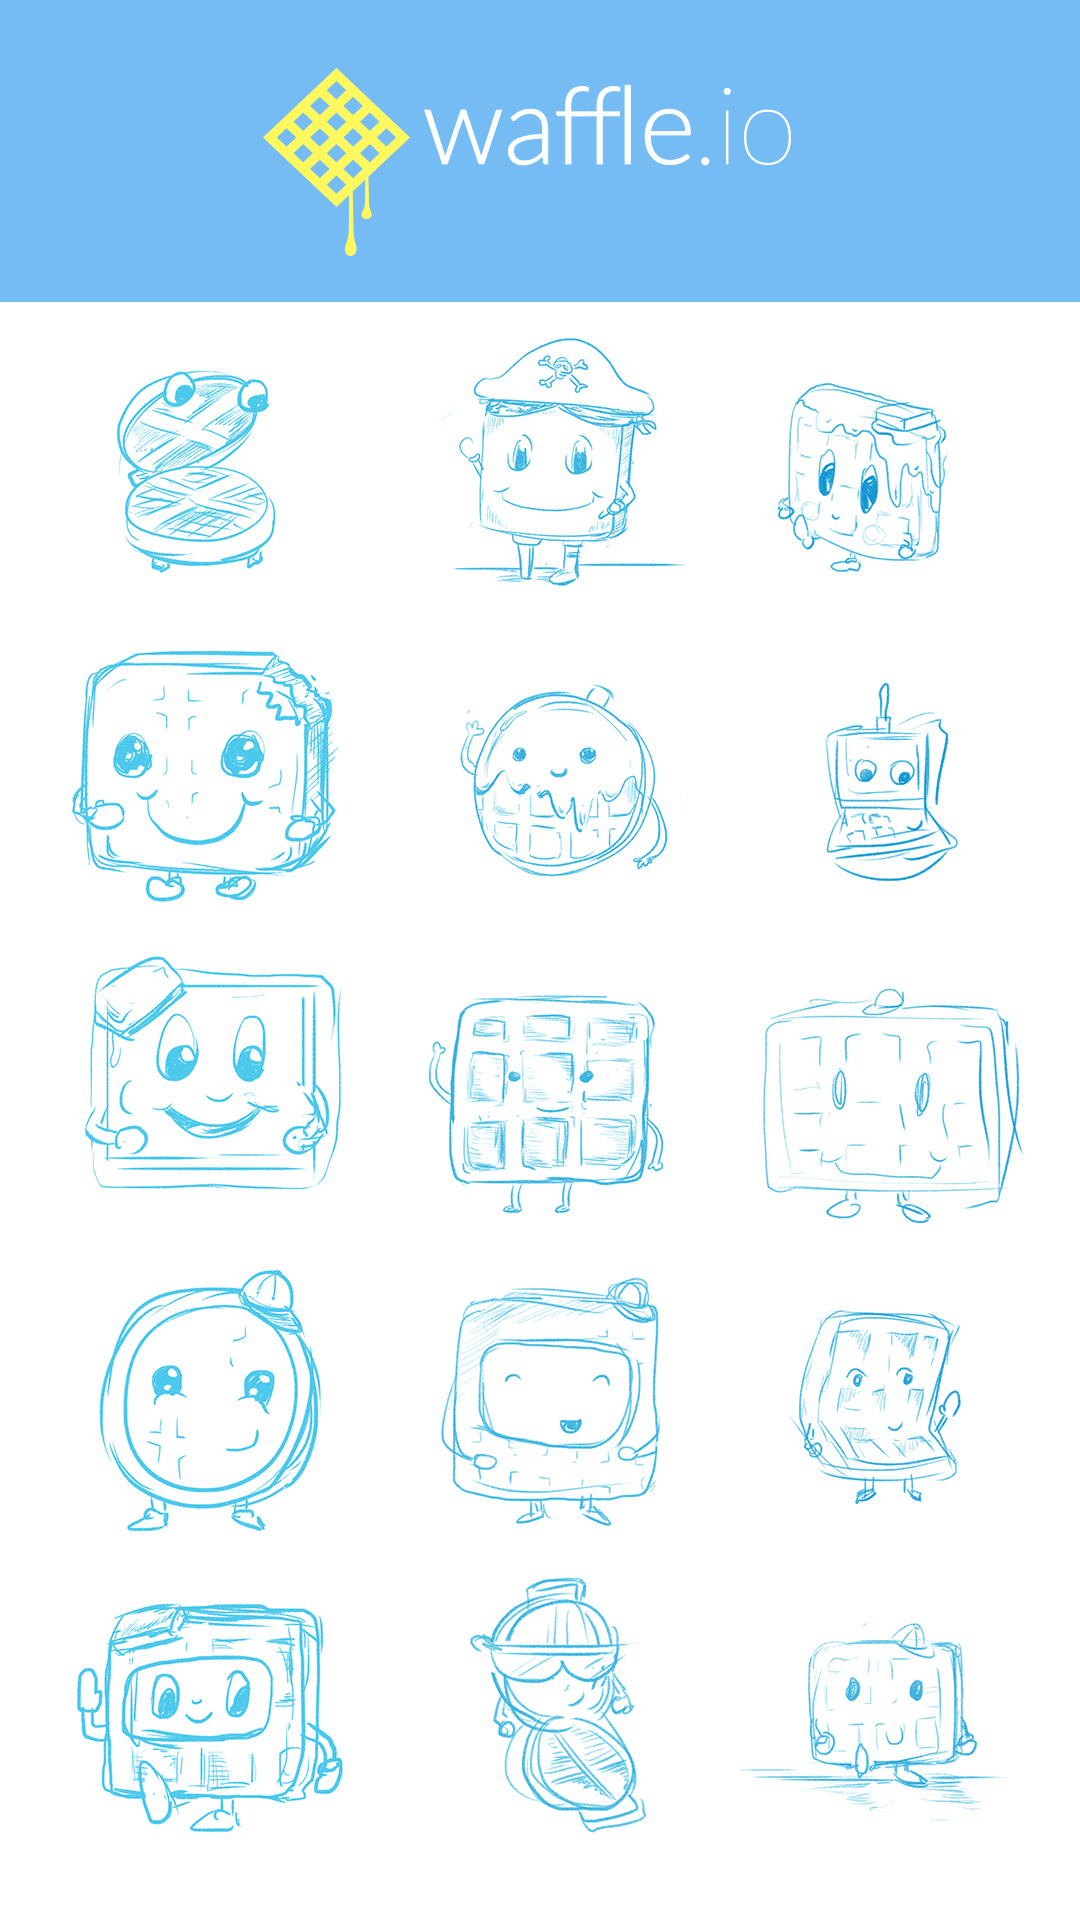 Wafflebot rough sketches